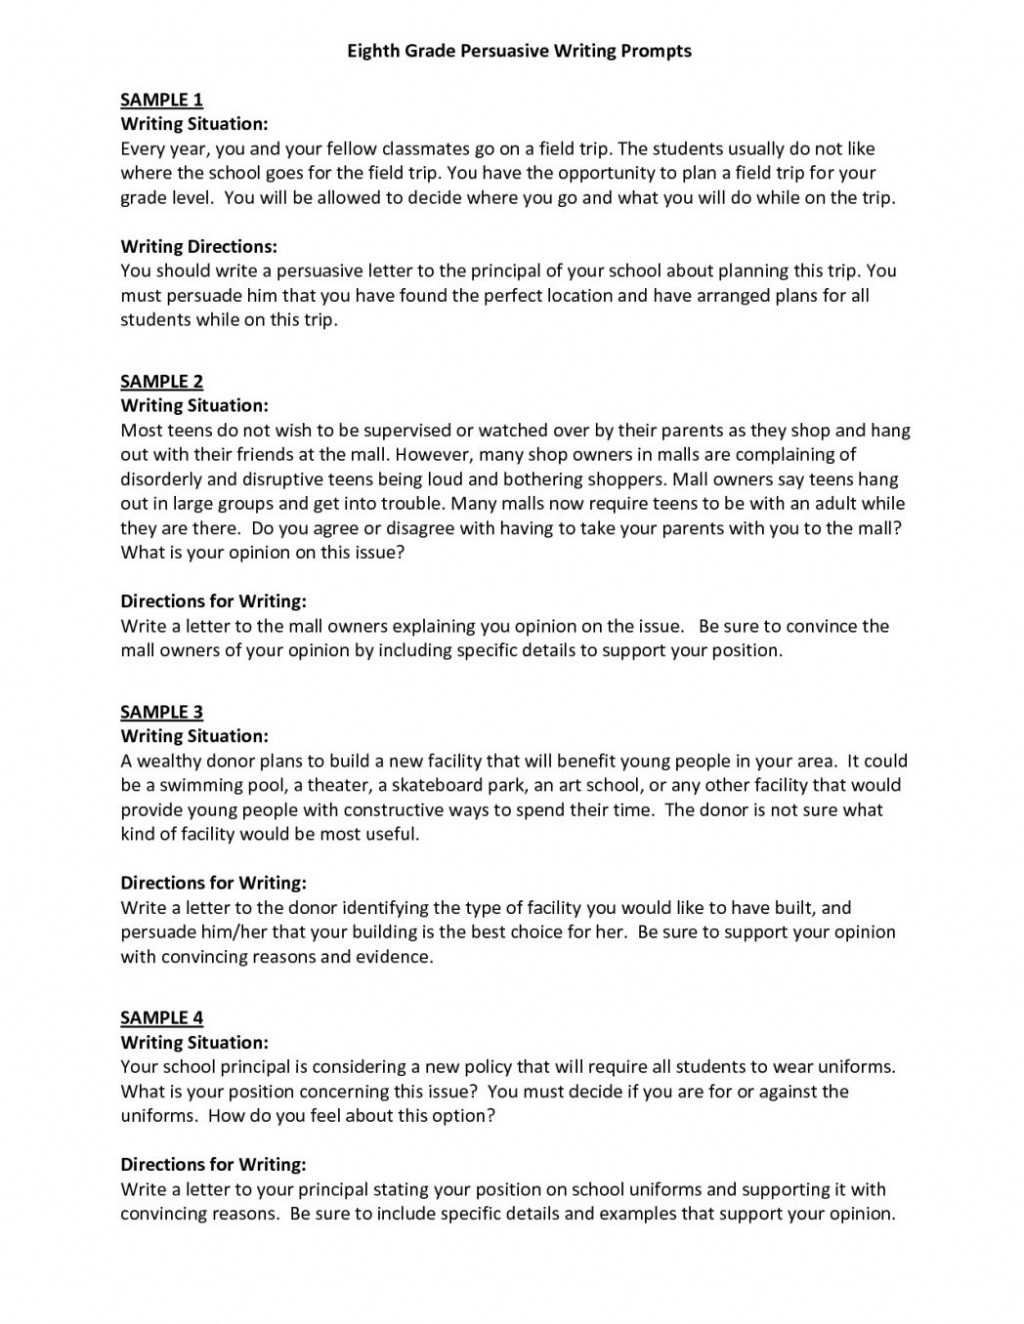 017 Argumentative Essay Topics For Middle School Writings And Essays High Students Character Throughout Ar Withicles Pdf 1048x1356 Example About Formidable Art Related To Artificial Intelligence Philosophy Of Performing Arts Large